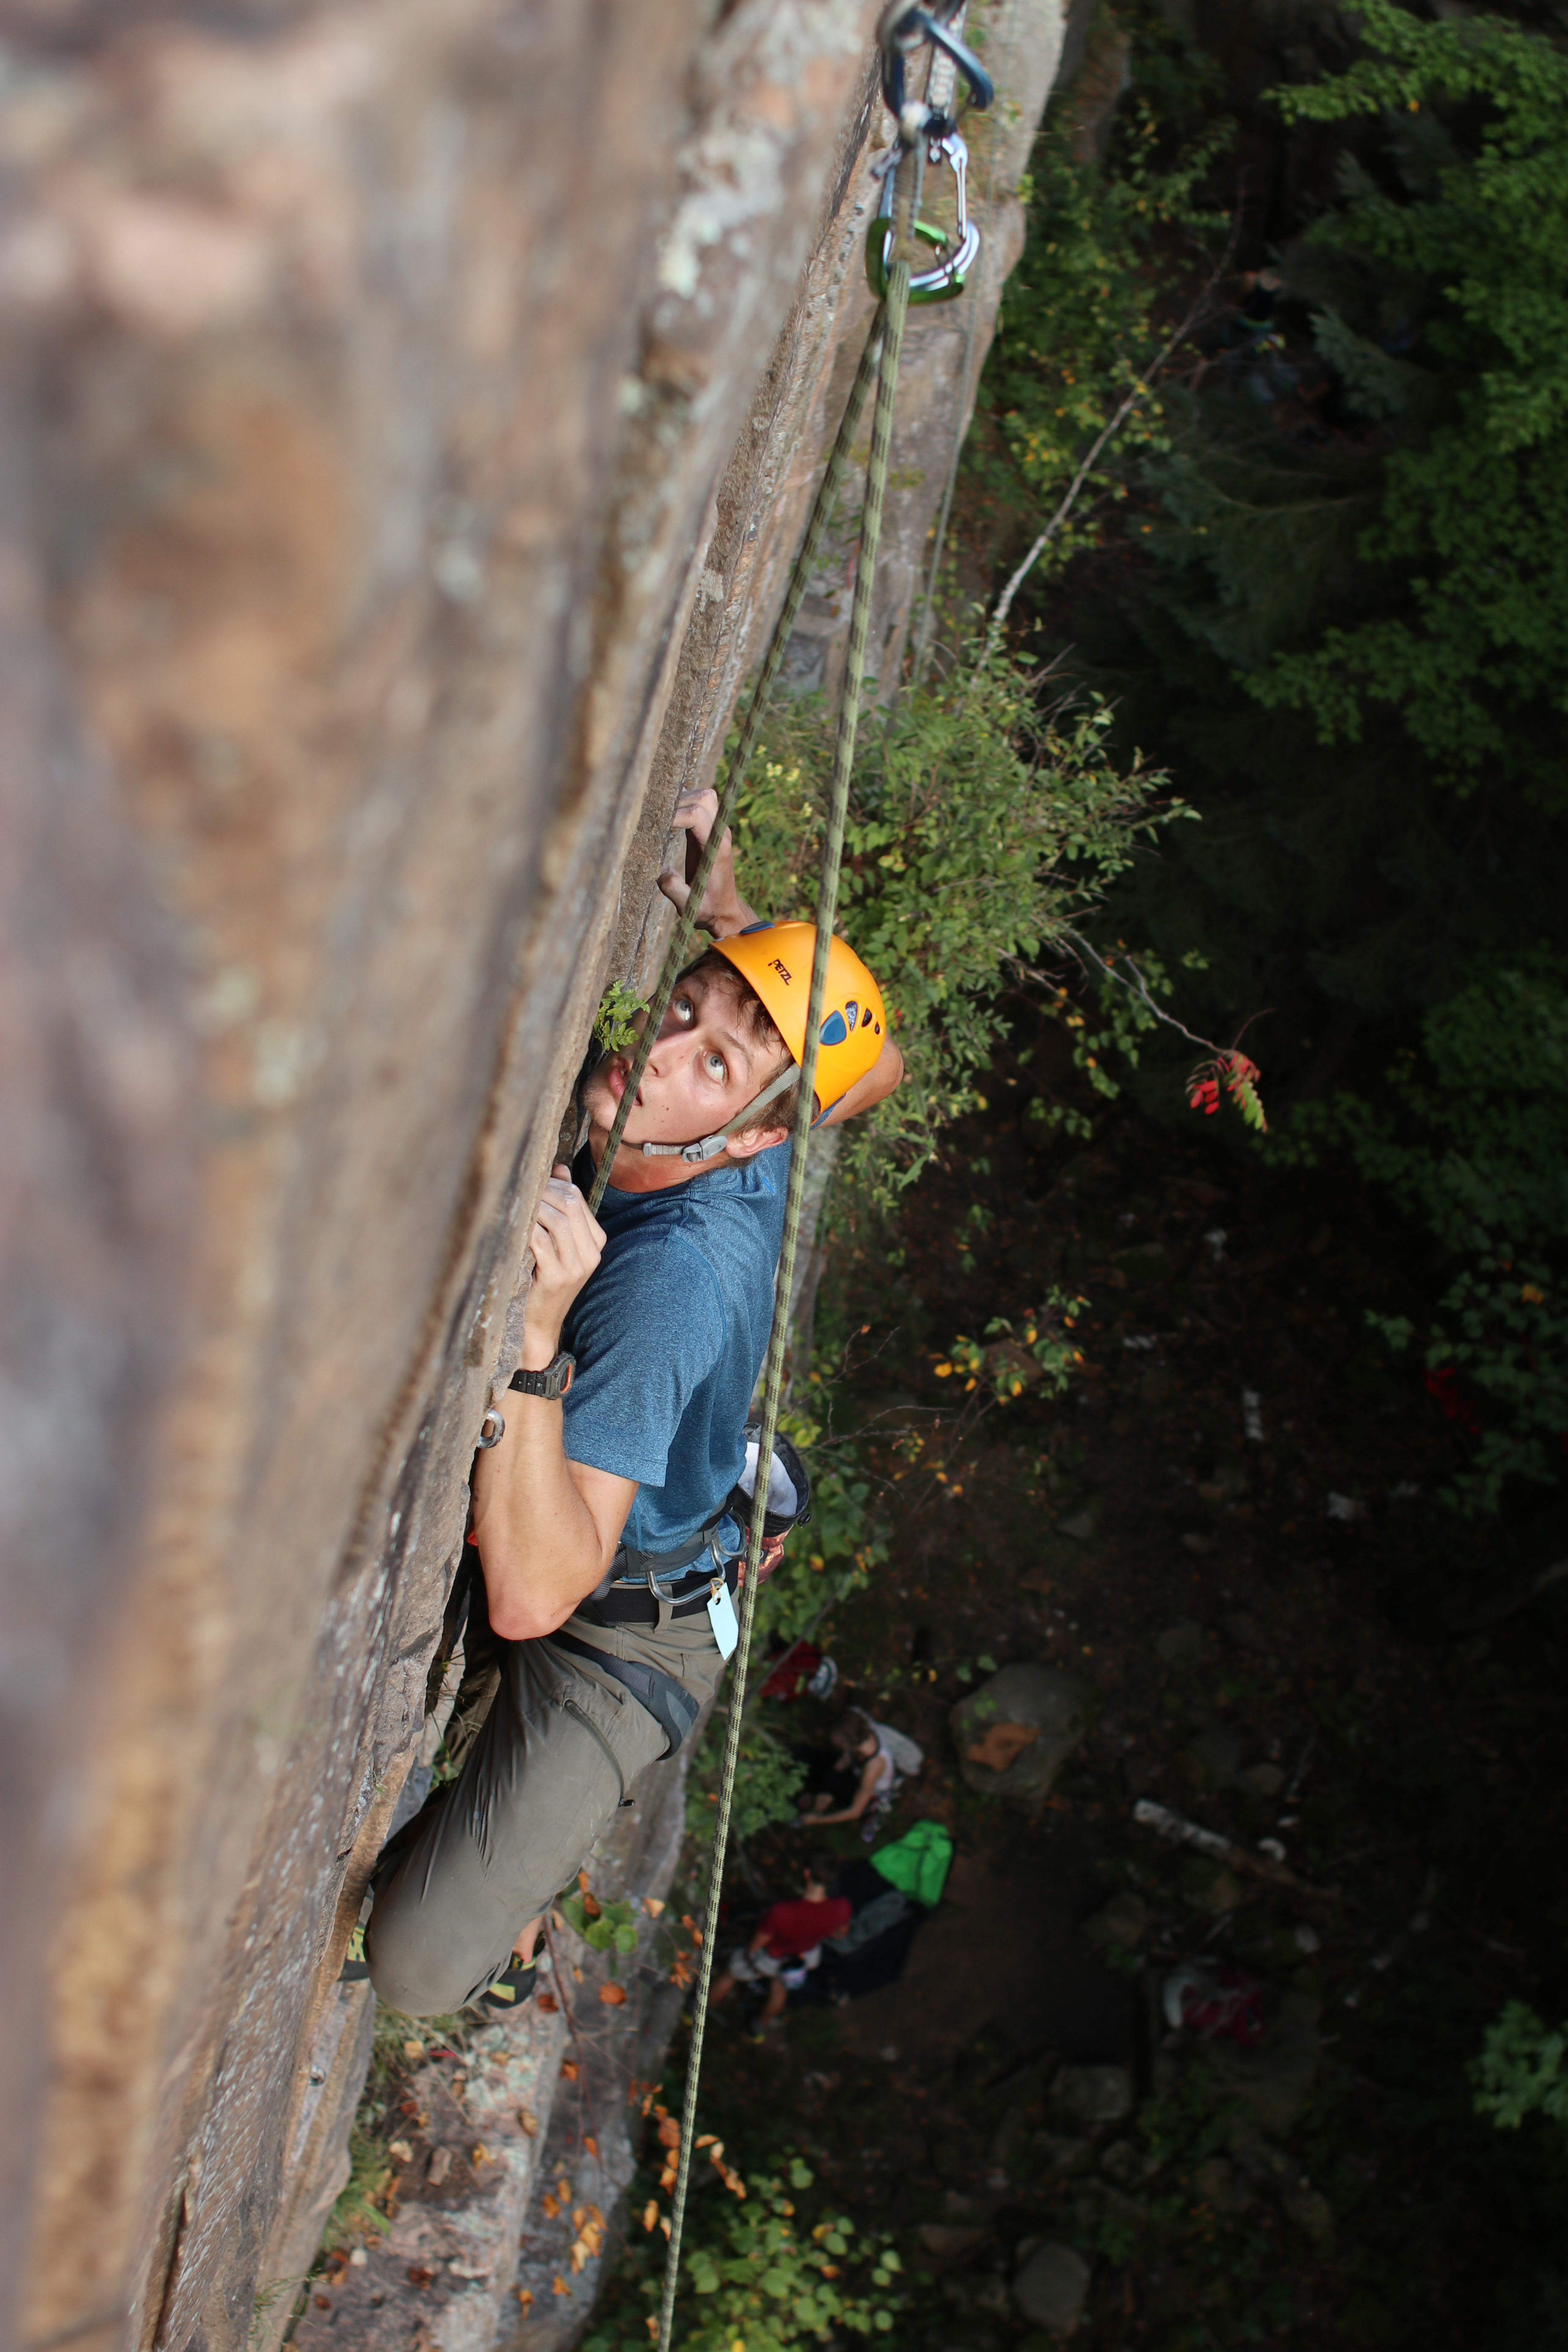 Scending Sota Rock Climbing S Rise In The Land Of 10 000 Lakes The Minnesota Daily